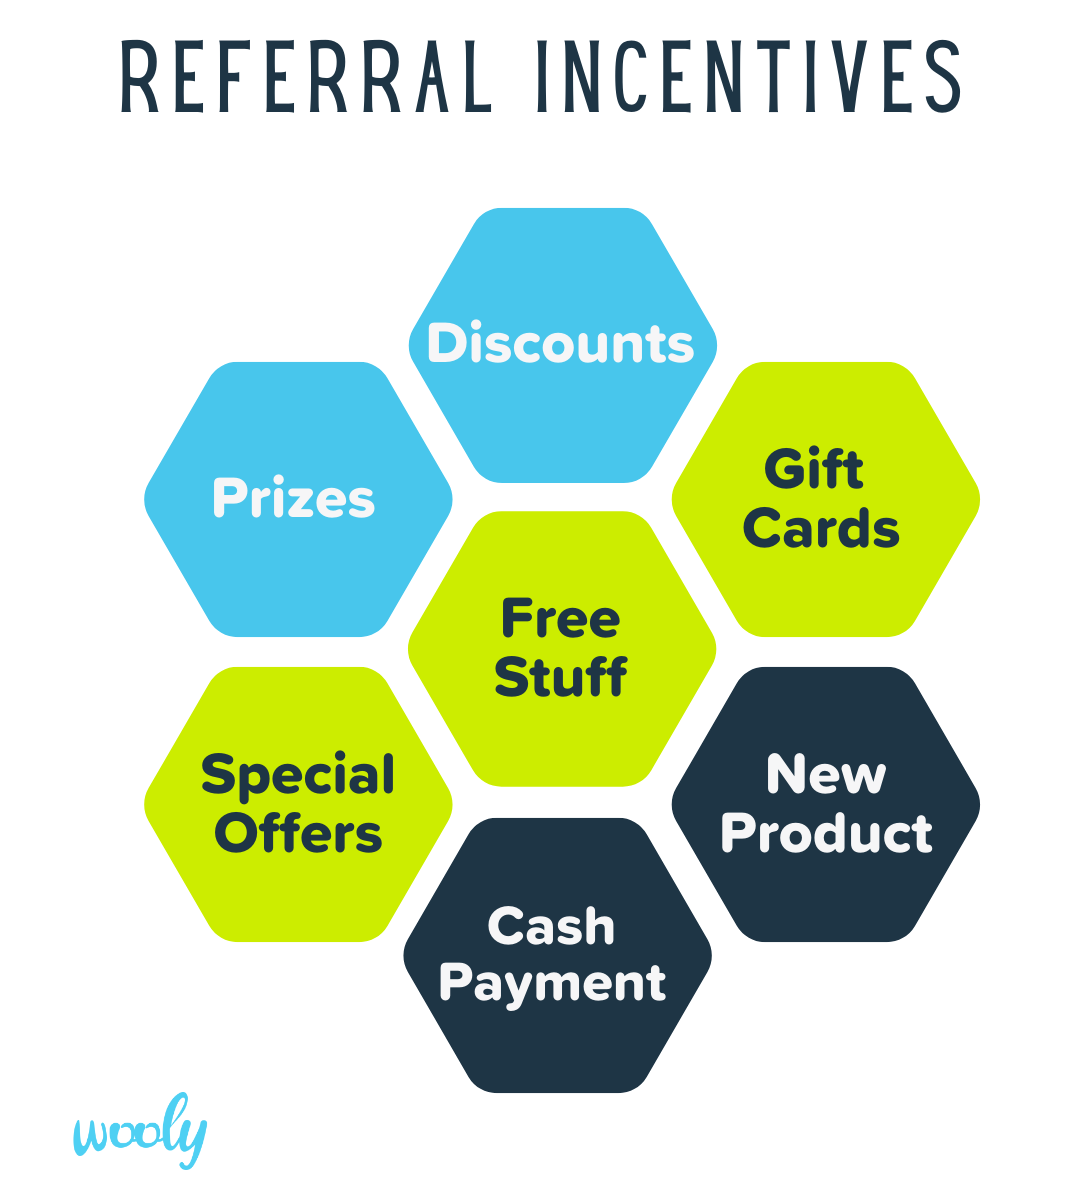 referral in1entives and rewards in exchange for referral marketing